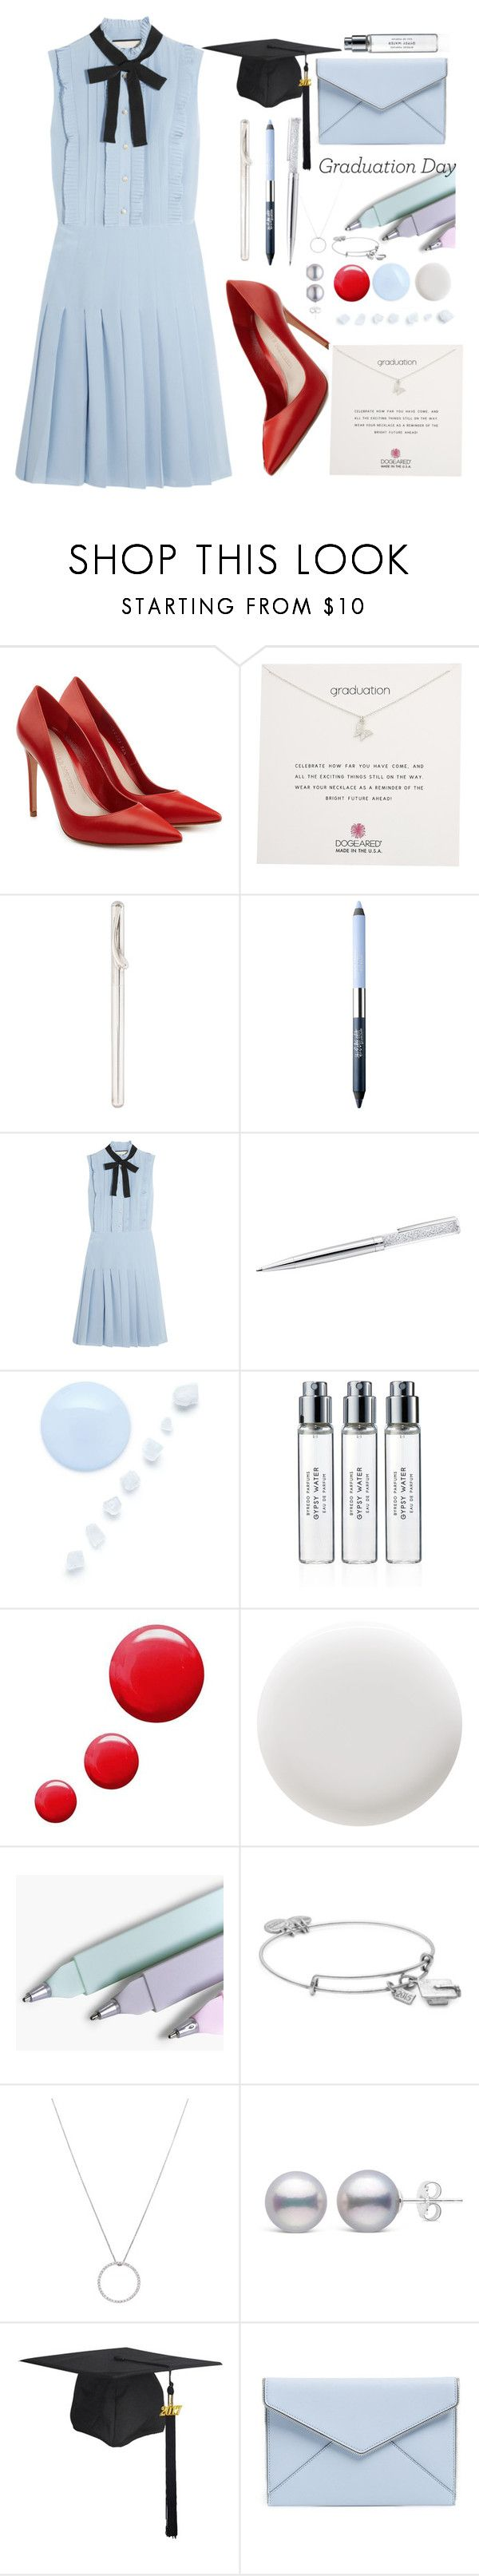 """🎓💙"" by ddk8699 ❤ liked on Polyvore featuring Alexander McQueen, Dogeared, Tiffany & Co., Estée Lauder, Gucci, Byredo, Topshop, Deborah Lippmann, Boohoo and Alex and Ani"